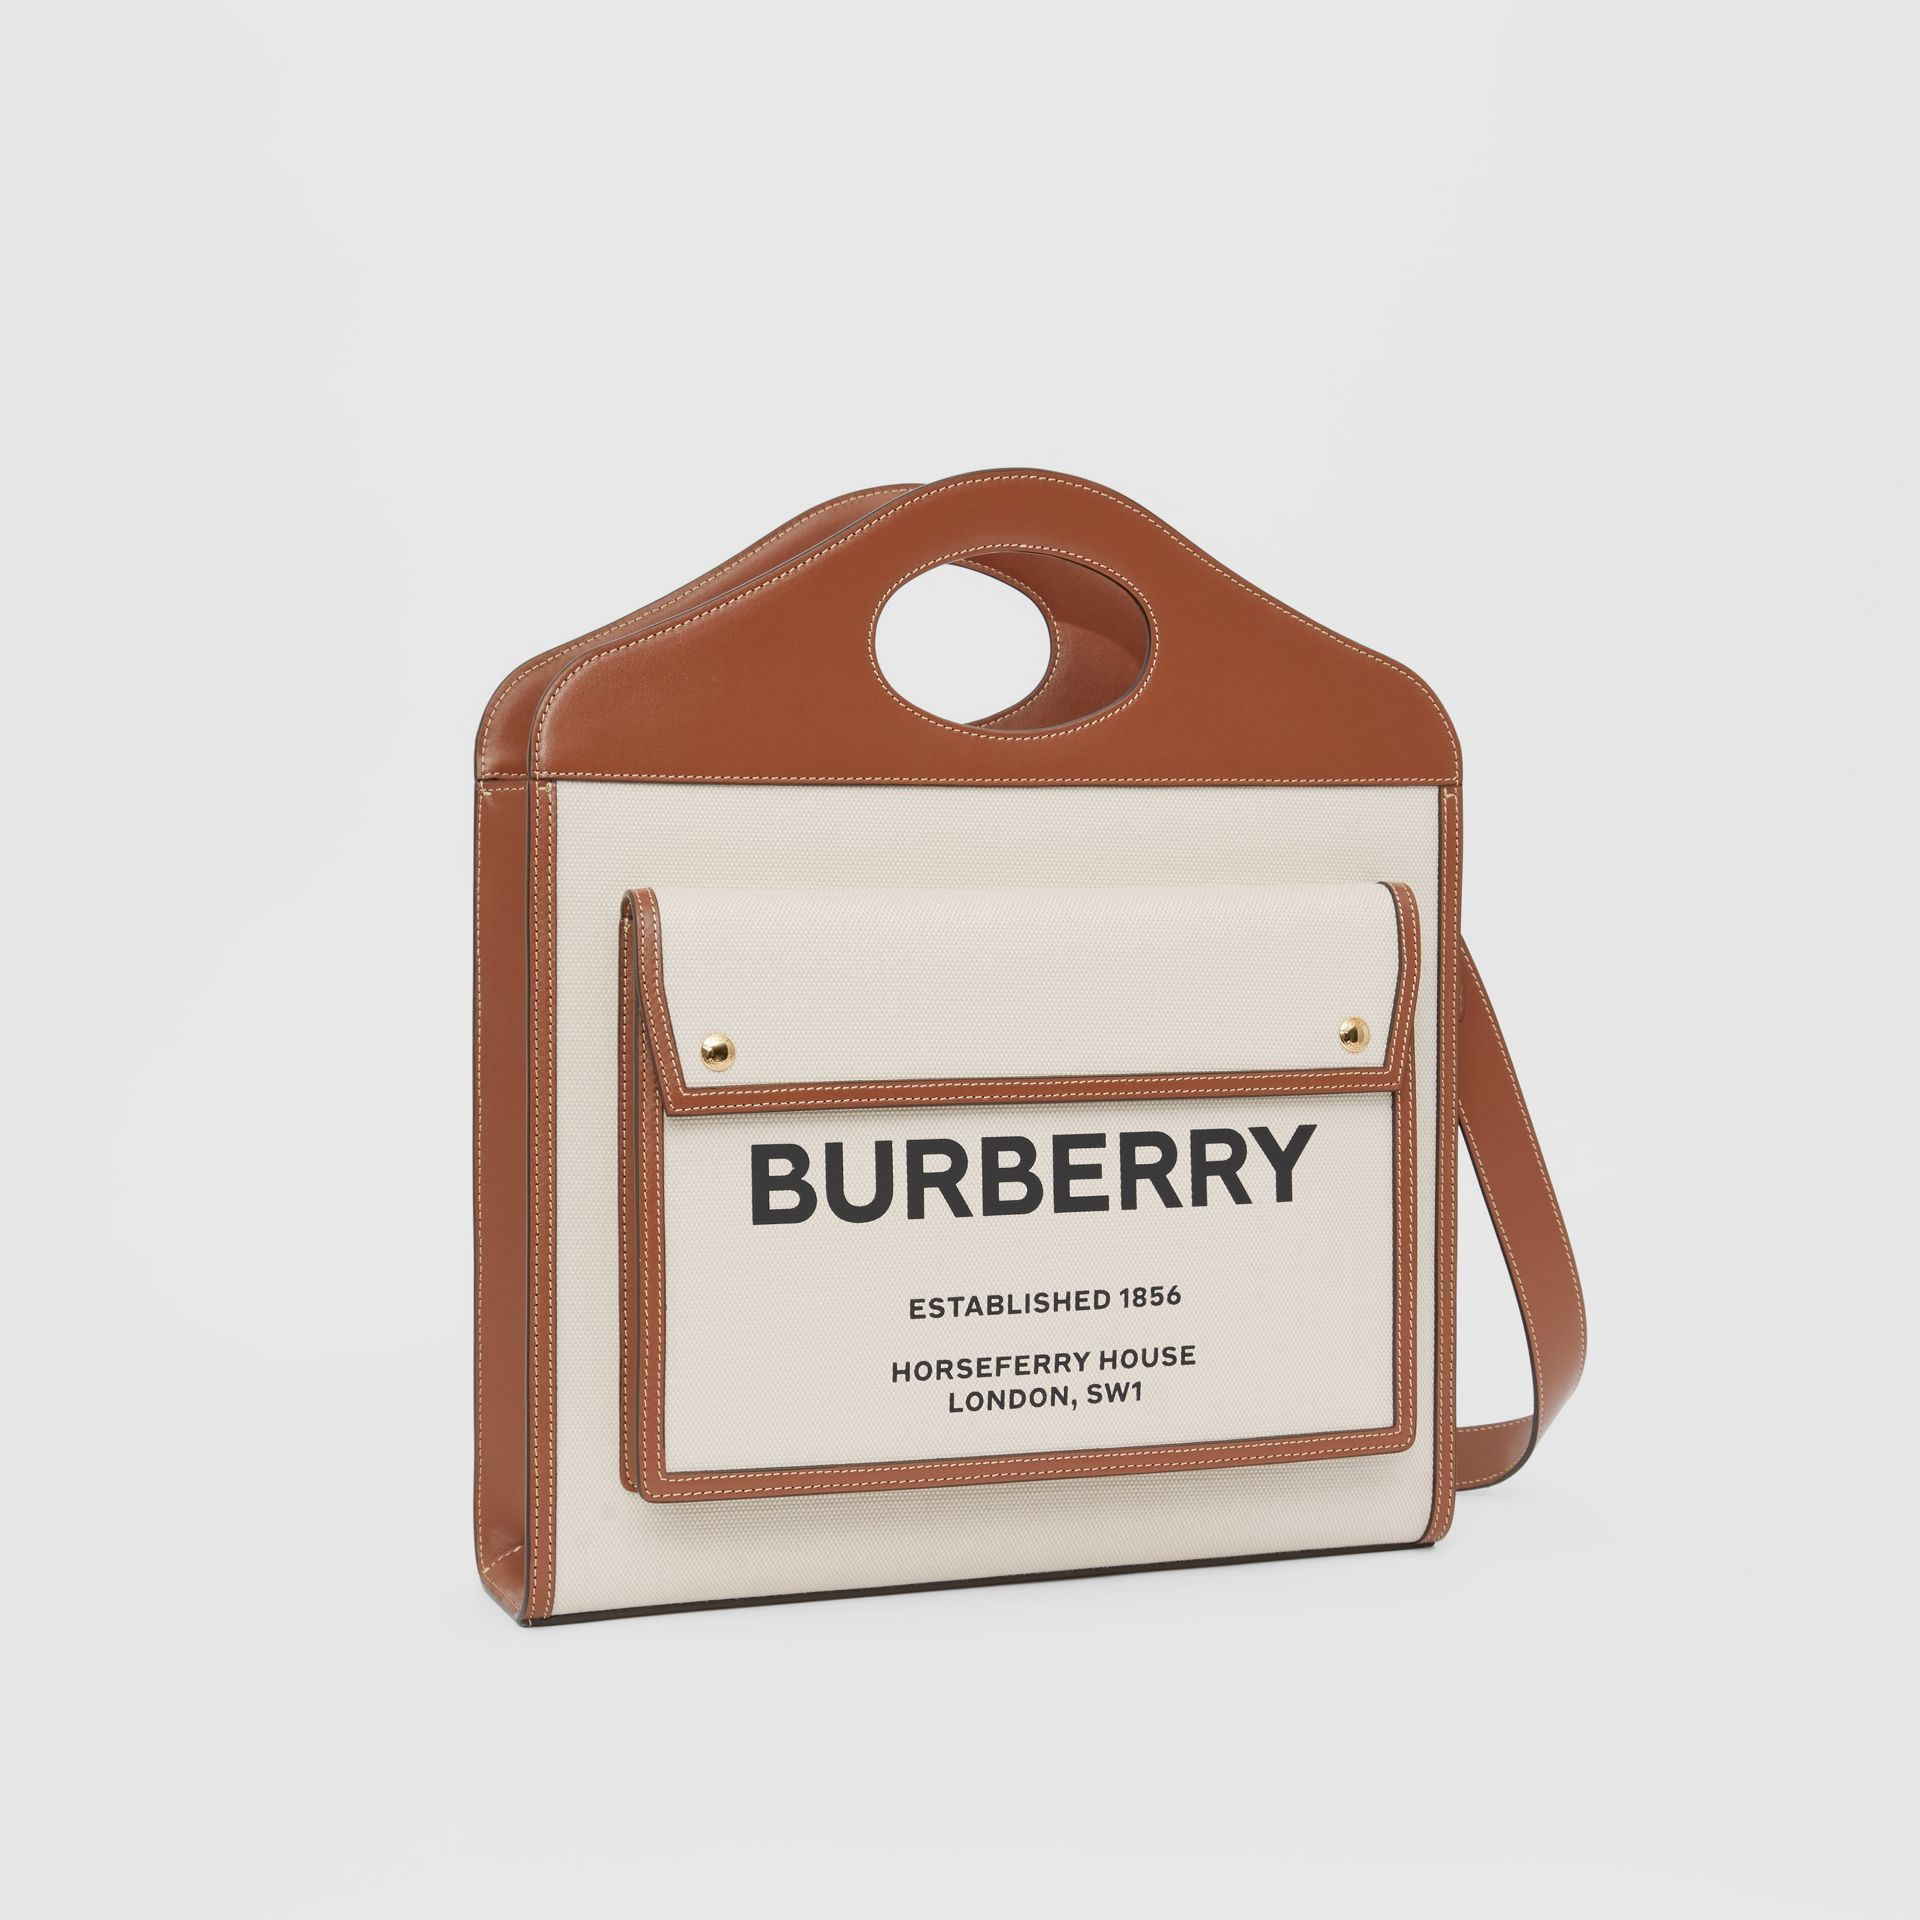 Medium Two-tone Canvas and Leather Pocket Bag in Natural/malt Brown - Women | Burberry - gallery image 4